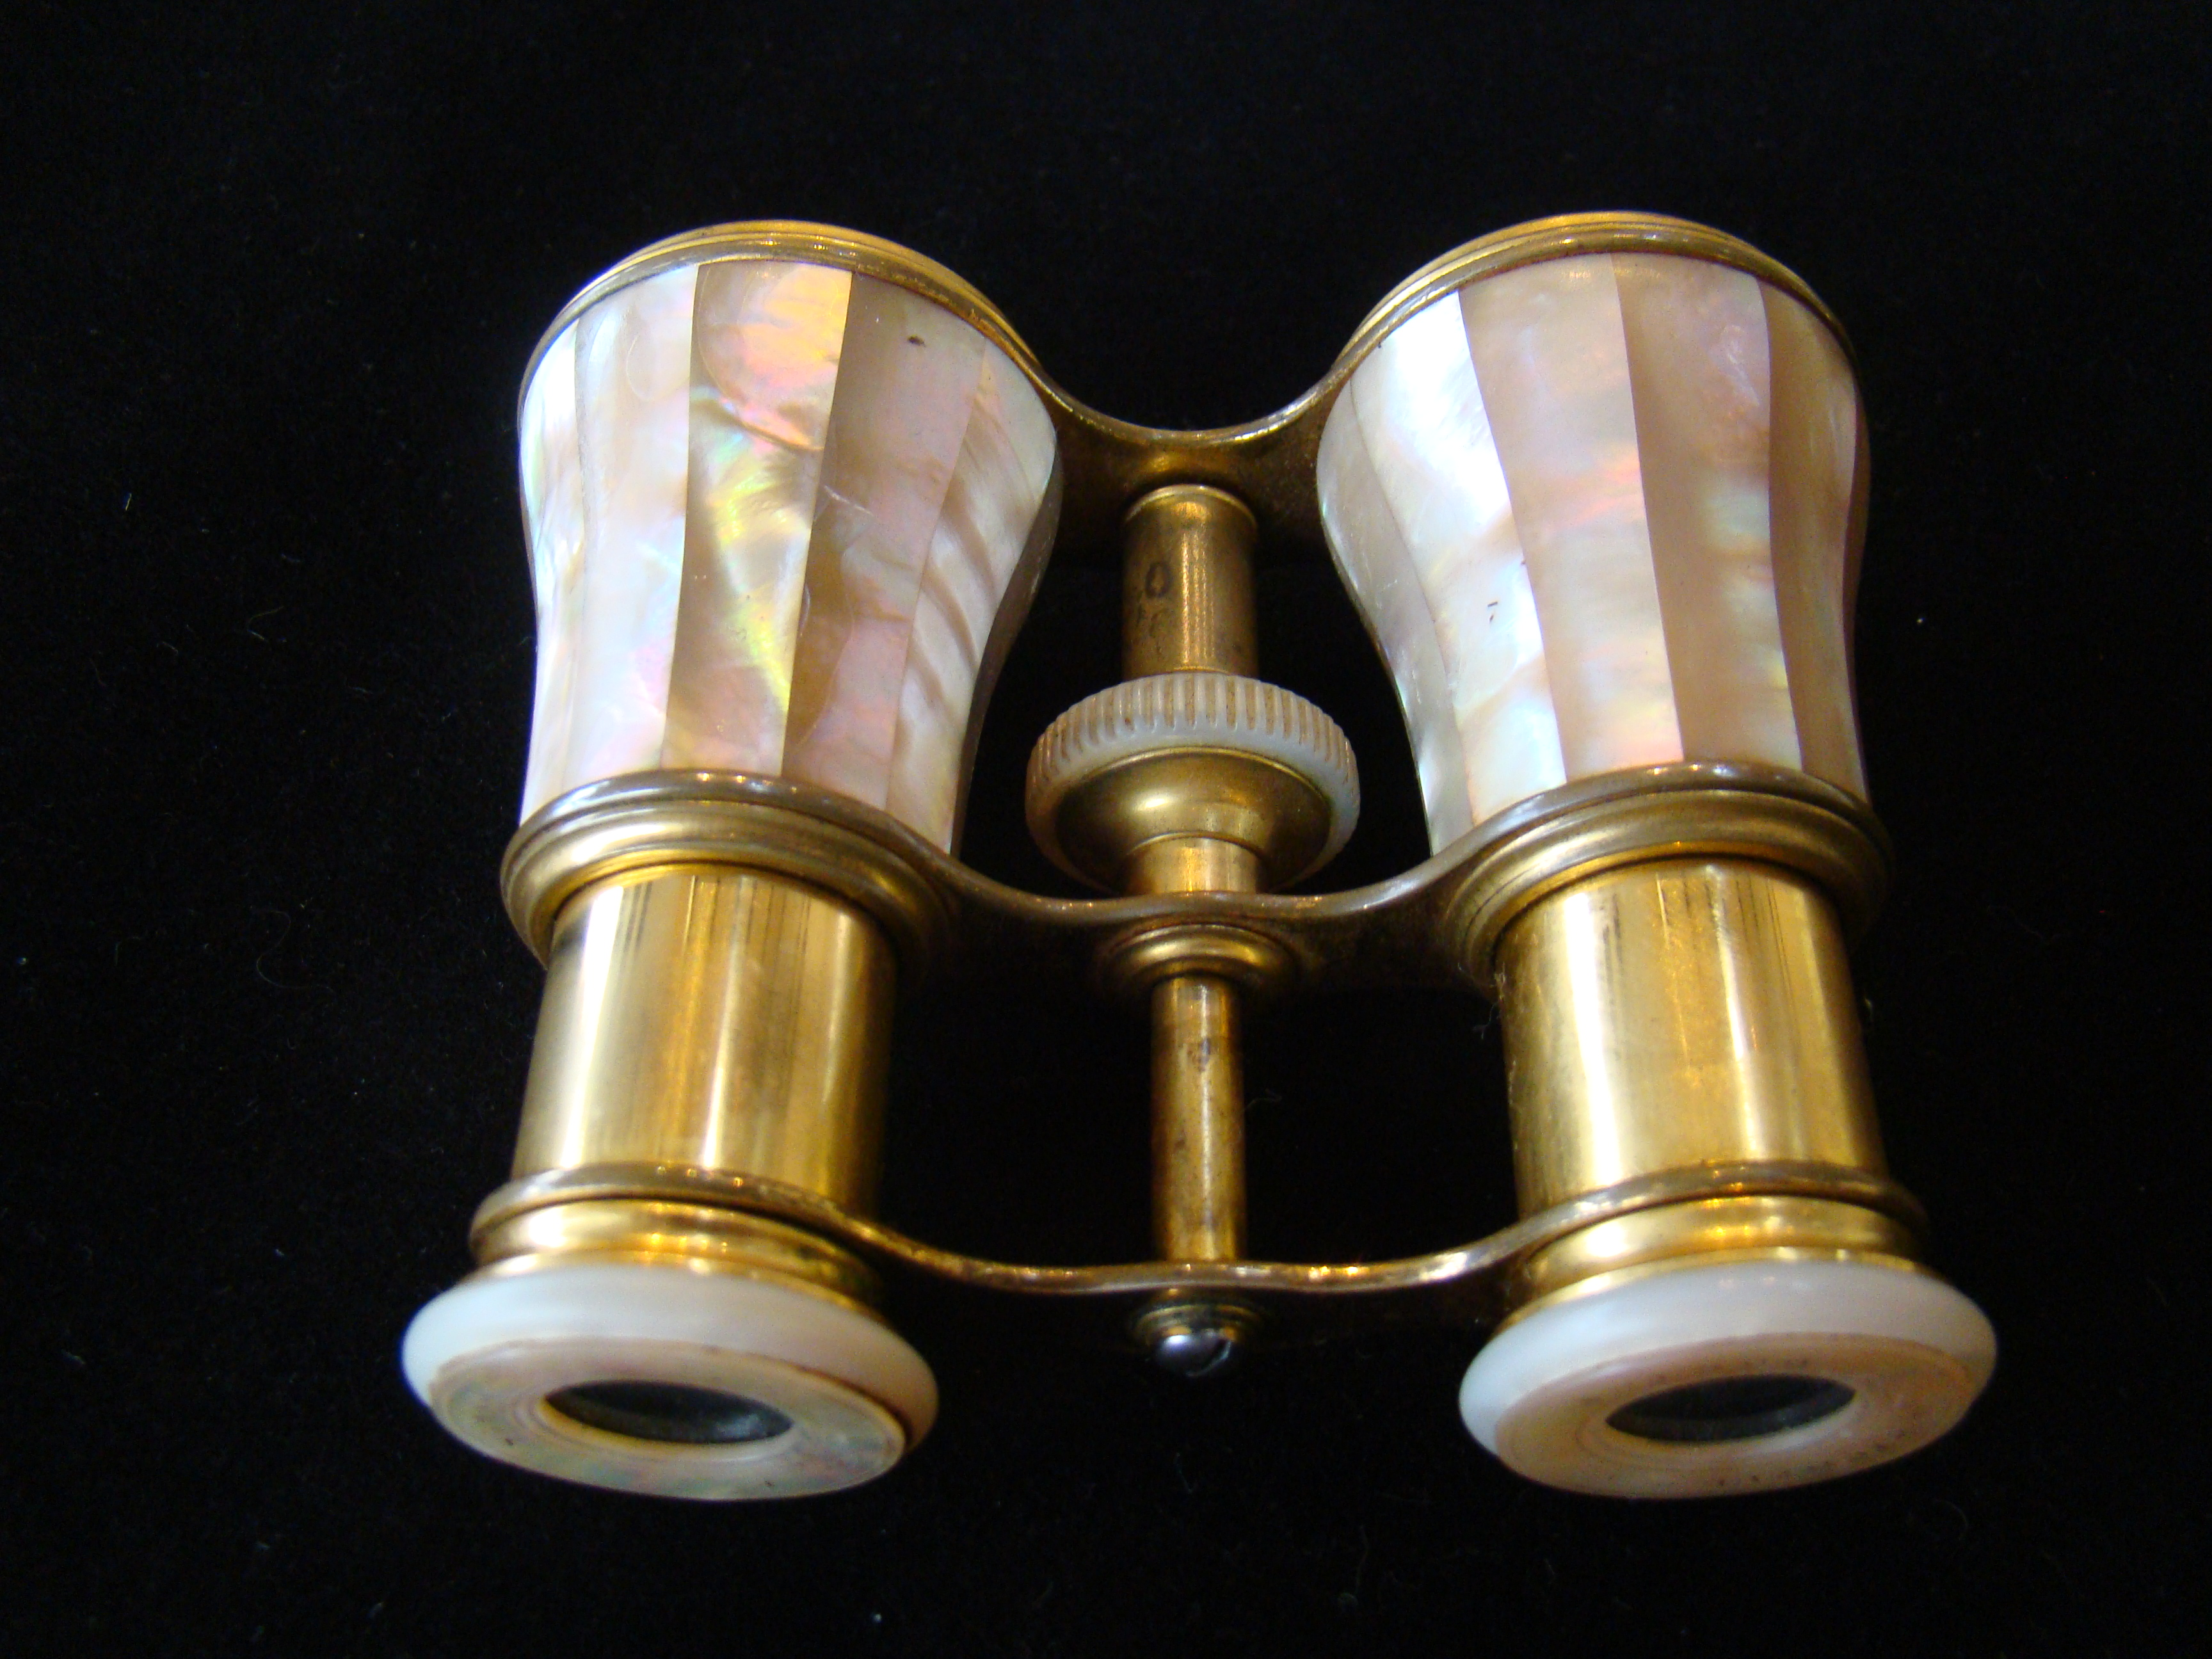 click to view larger image of A fine pair of French opera glasses made by Lemaire of Paris and retailed by Alexander Stowell of Boston circa 1890